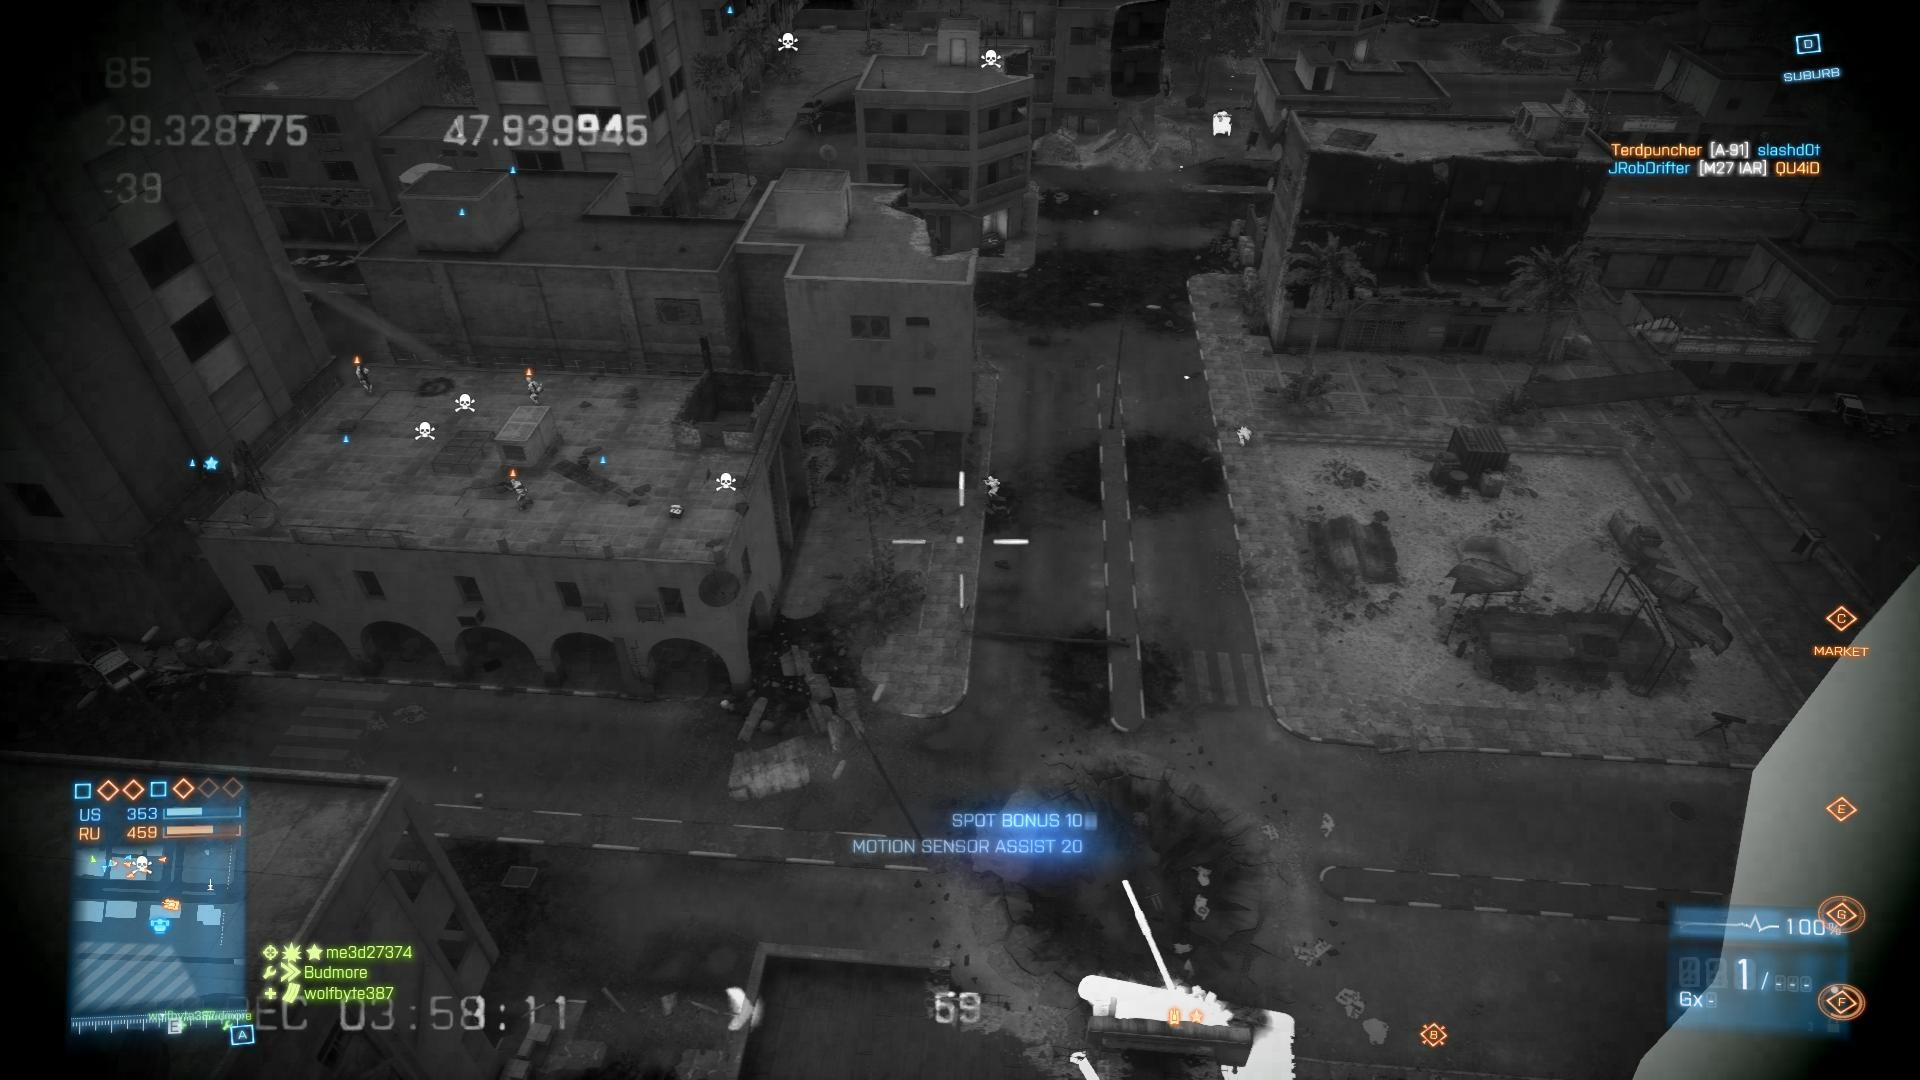 Battlefield 3: Back to Karkand Windows Using the Recon kit and MAV pointing out targets over Karkand square enemy on the rooftops